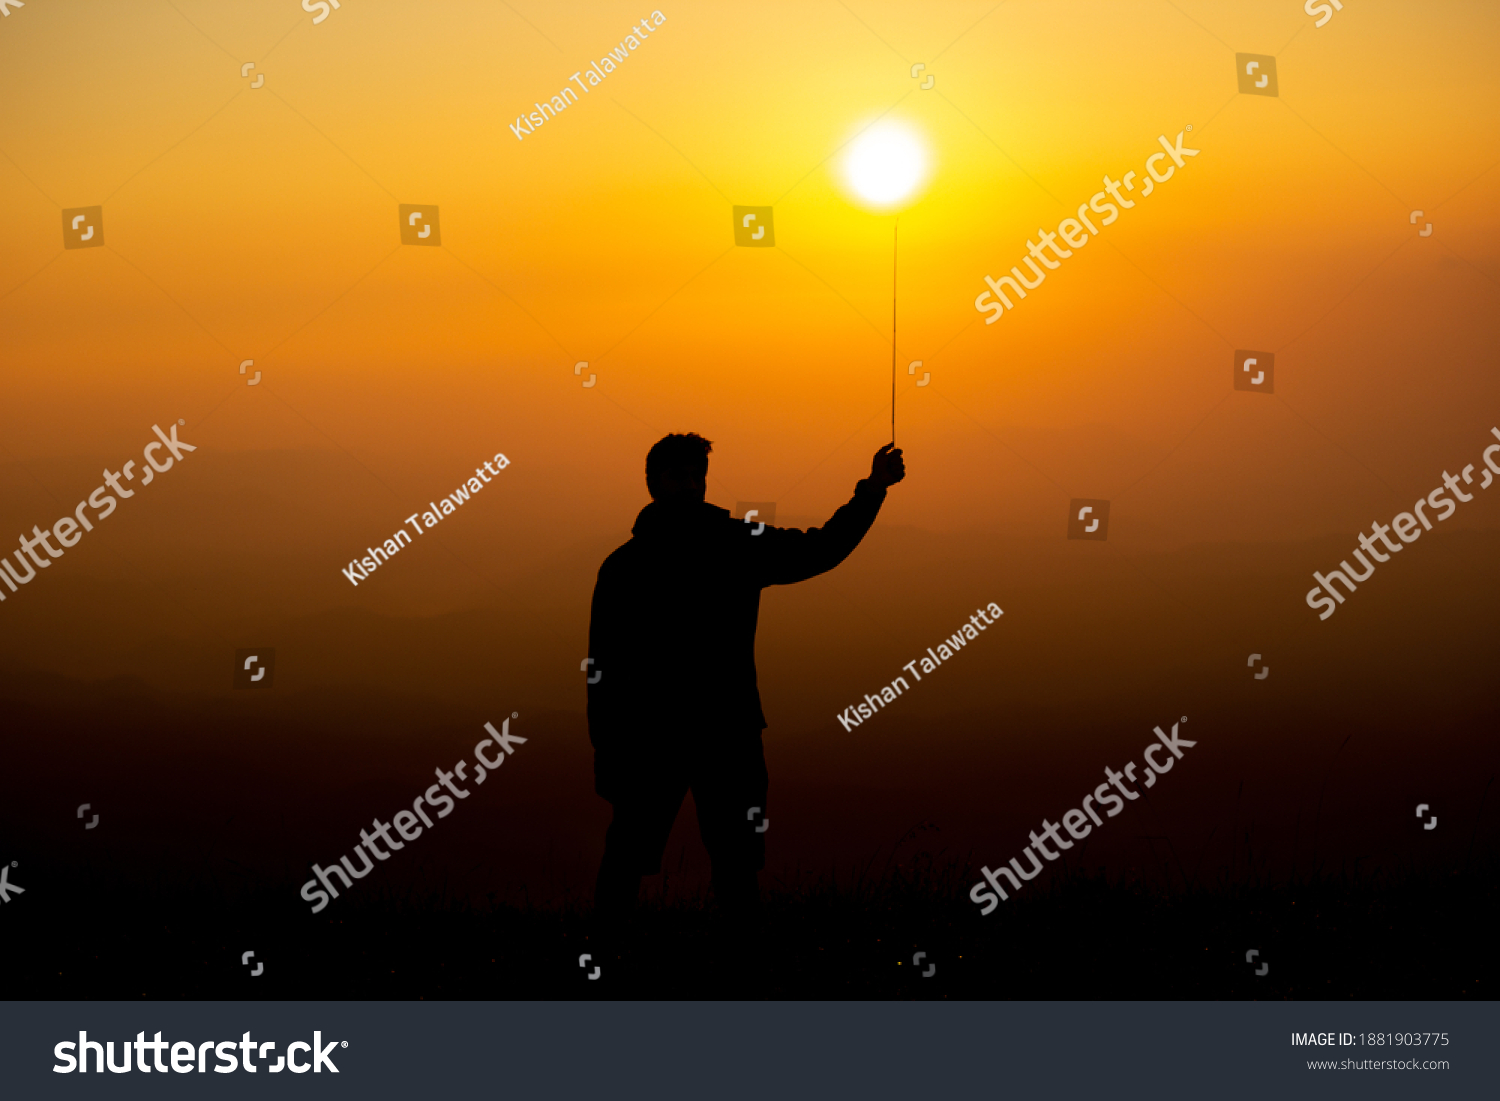 stock-photo-silhouette-of-boy-playing-wi